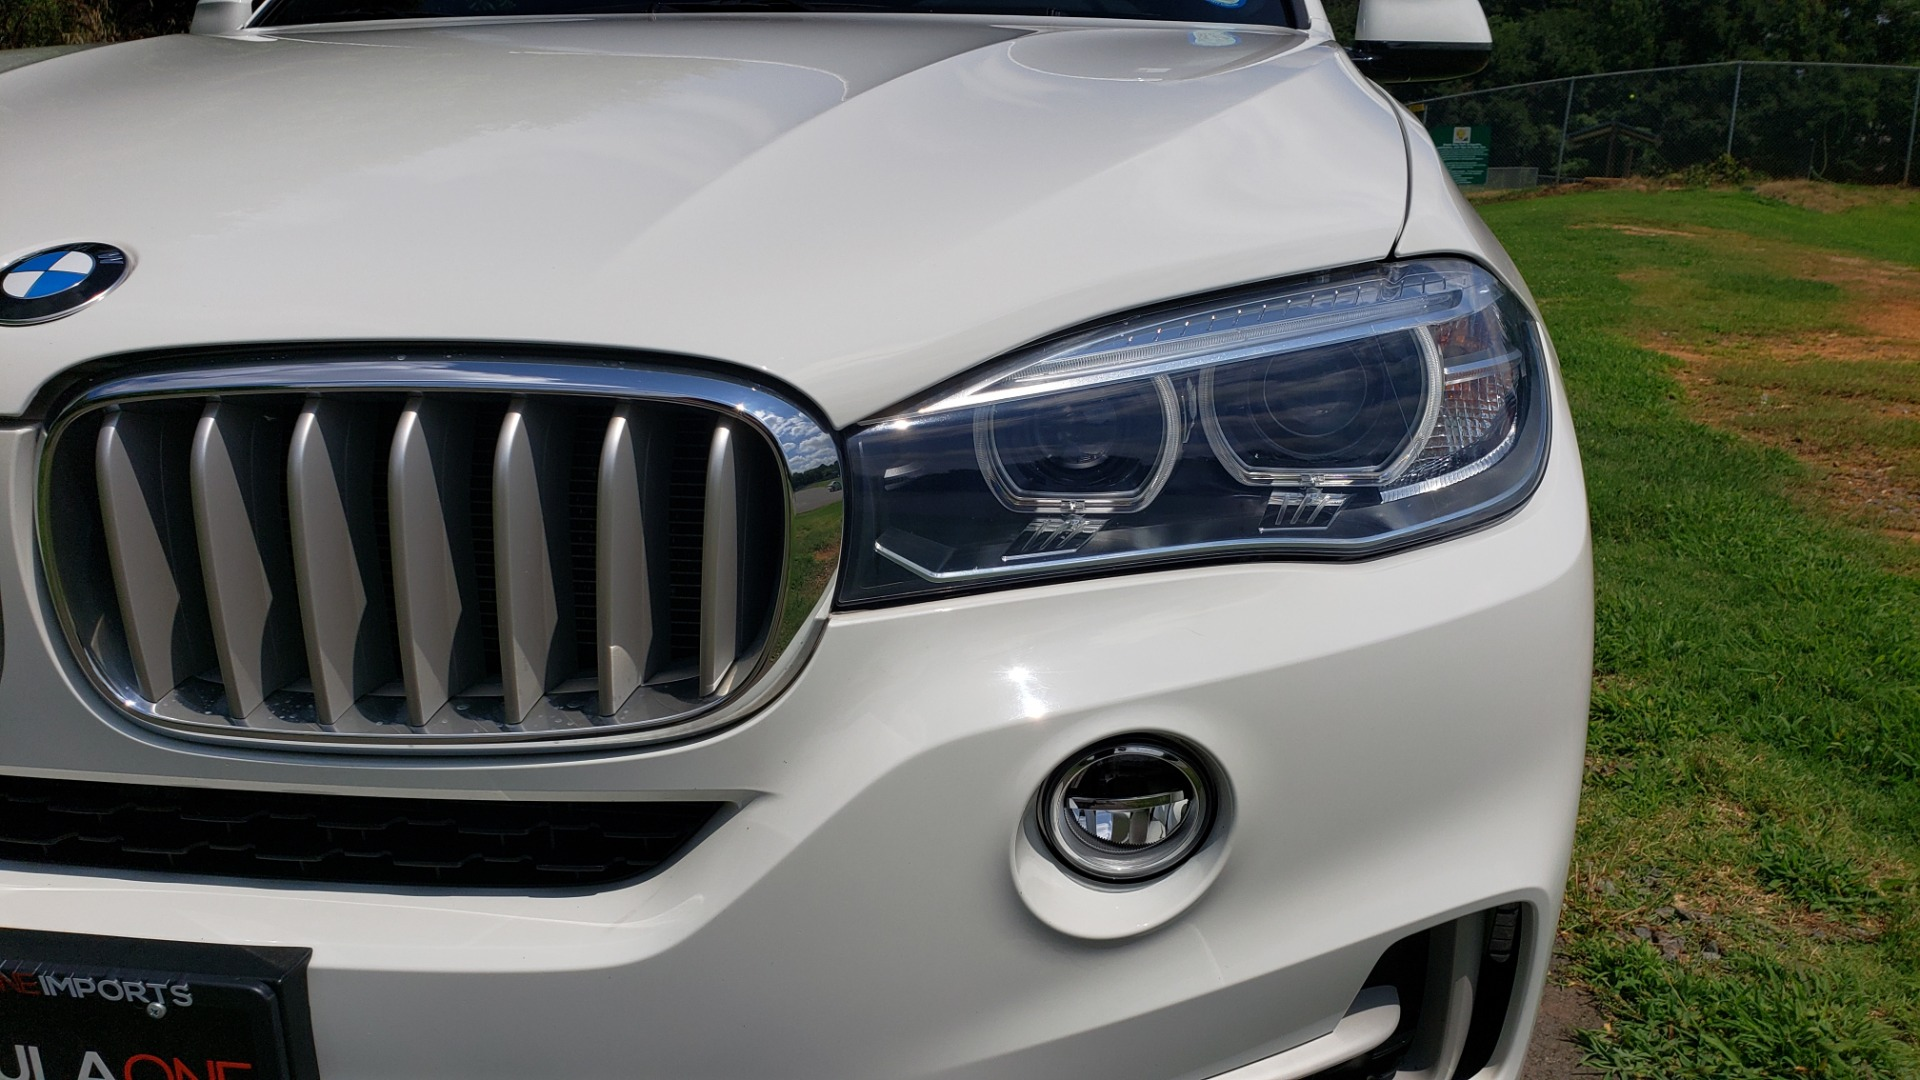 Used 2017 BMW X5 XDRIVE35I / NAV / SUNROOF / RUNNING BOARDS / REARVIEW for sale $33,995 at Formula Imports in Charlotte NC 28227 8